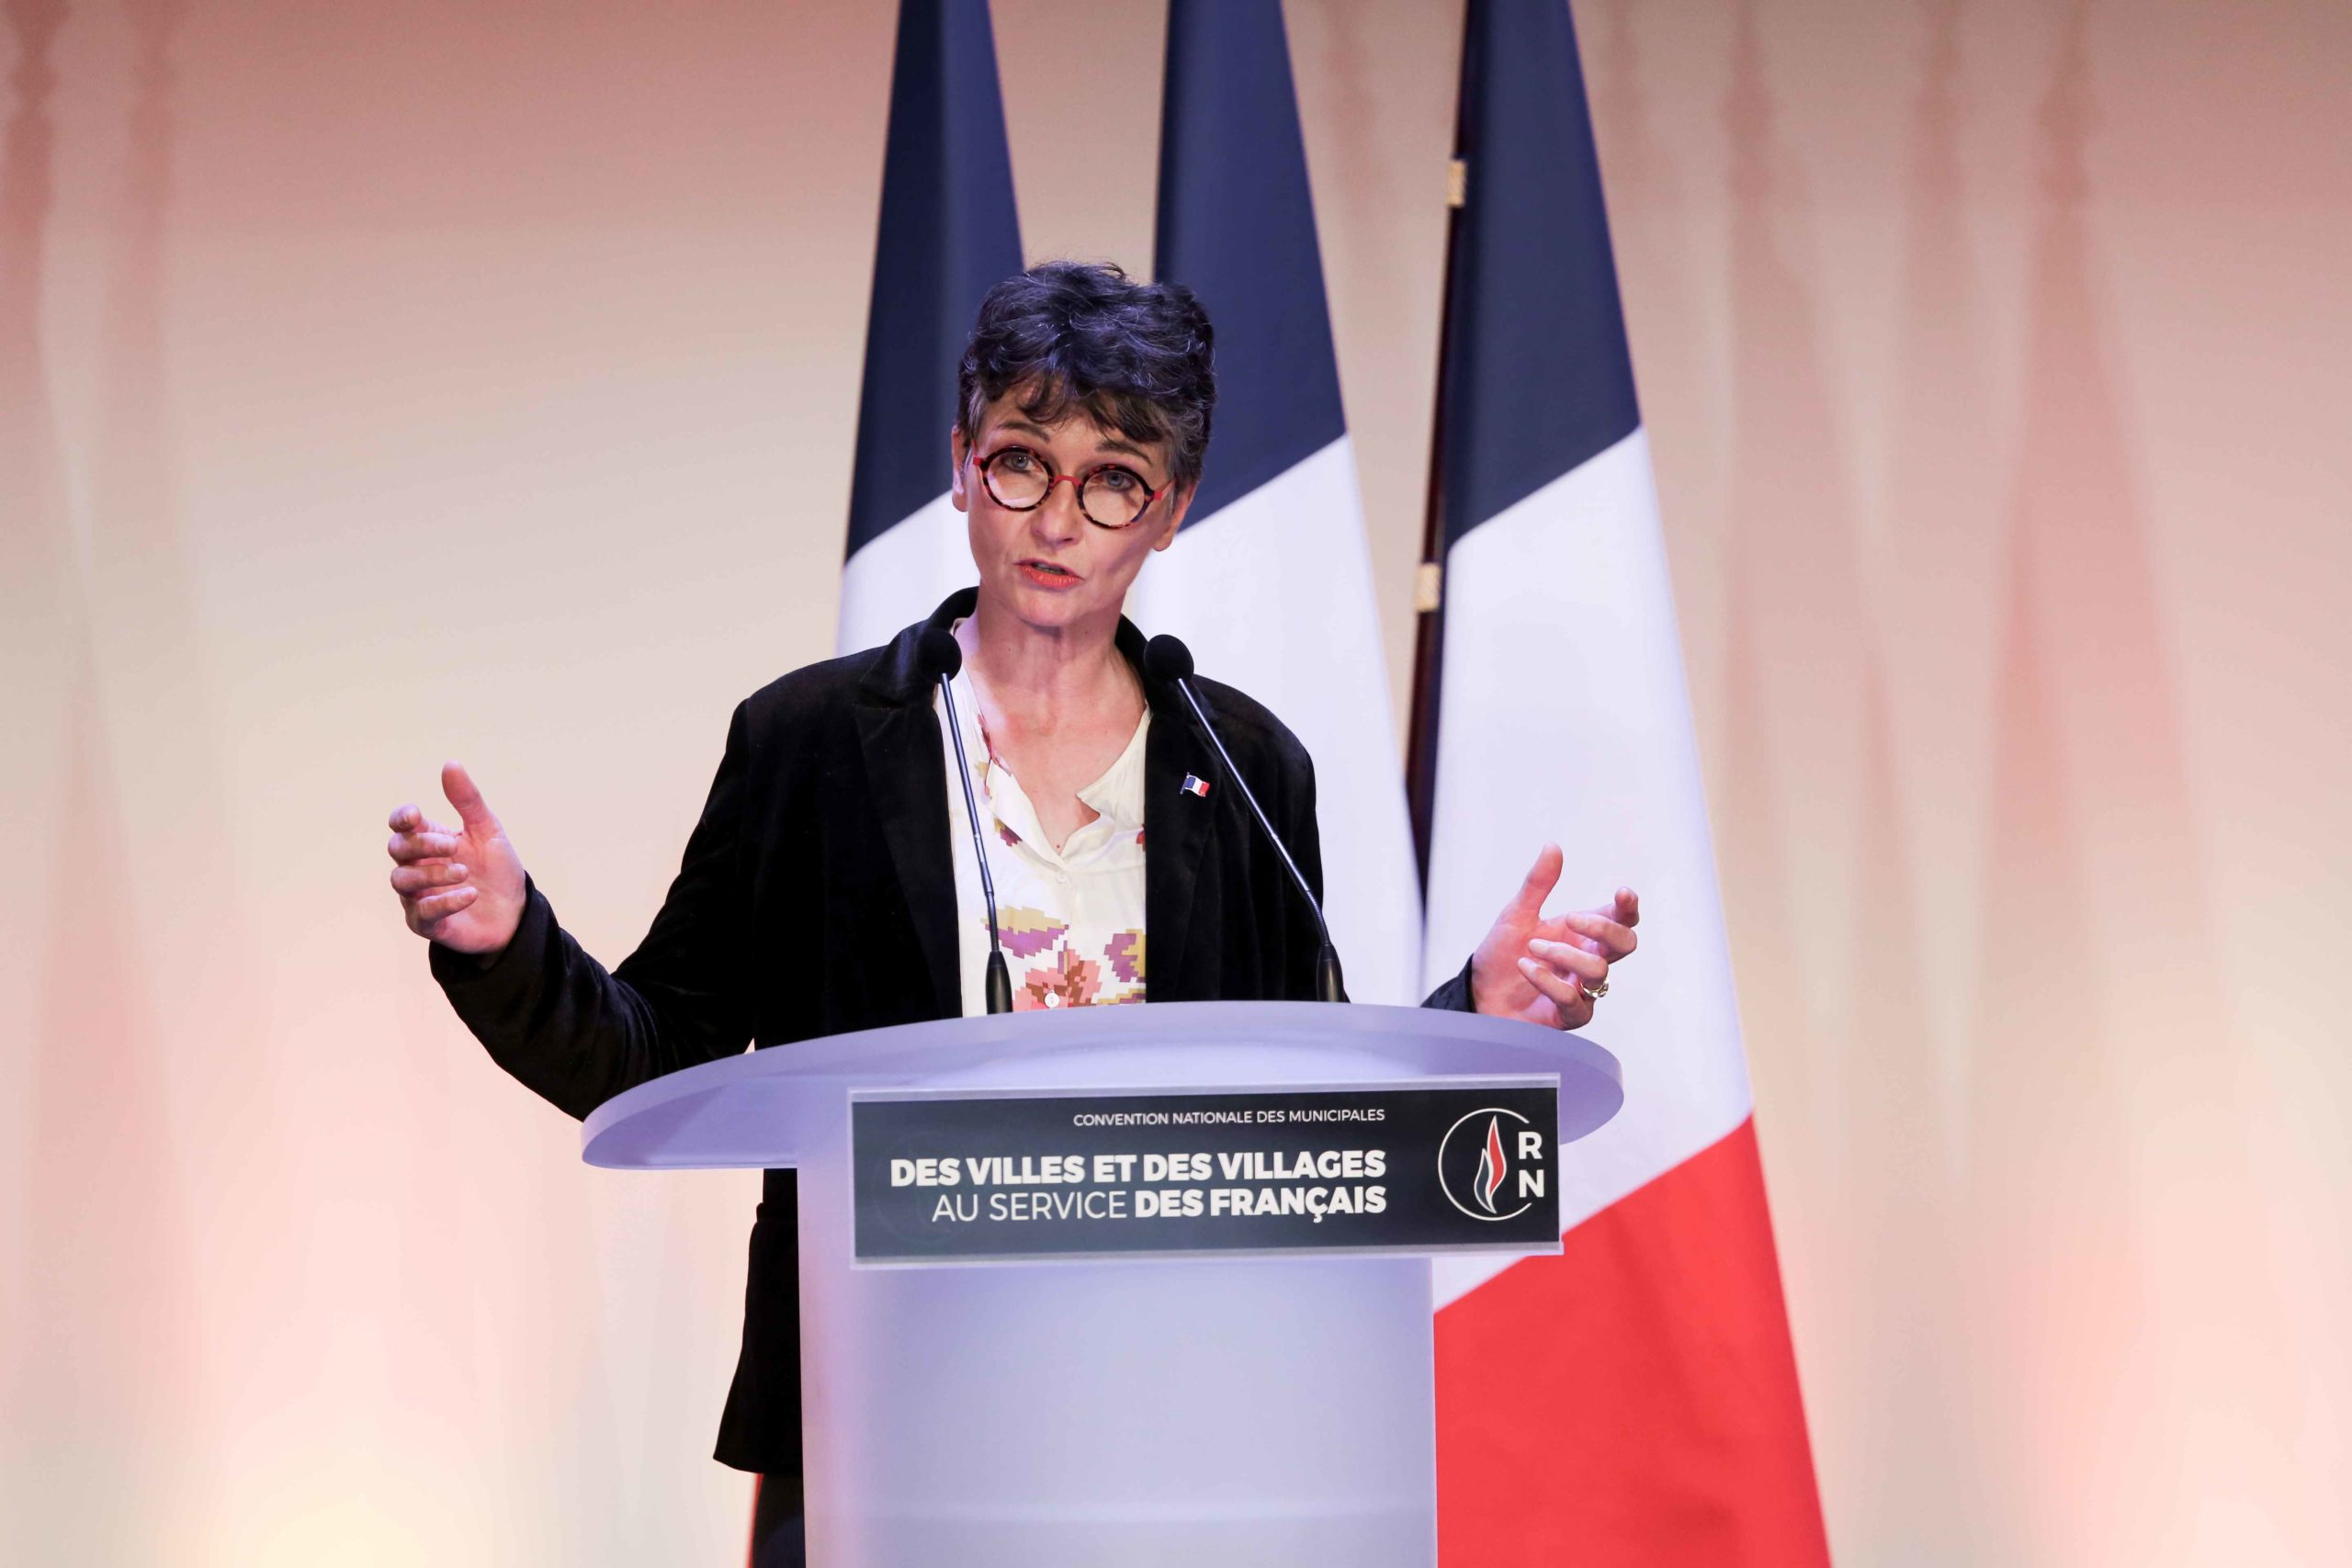 Françoise Grolet, the Rassemblement national (RN) candidate in the forthcoming mayoral election in Metz (Moselle), speaks in Paris, on January 12, 2020, during a meeting to launch the RN campaign candidates for the next municipal elections.  The 2020 Fren